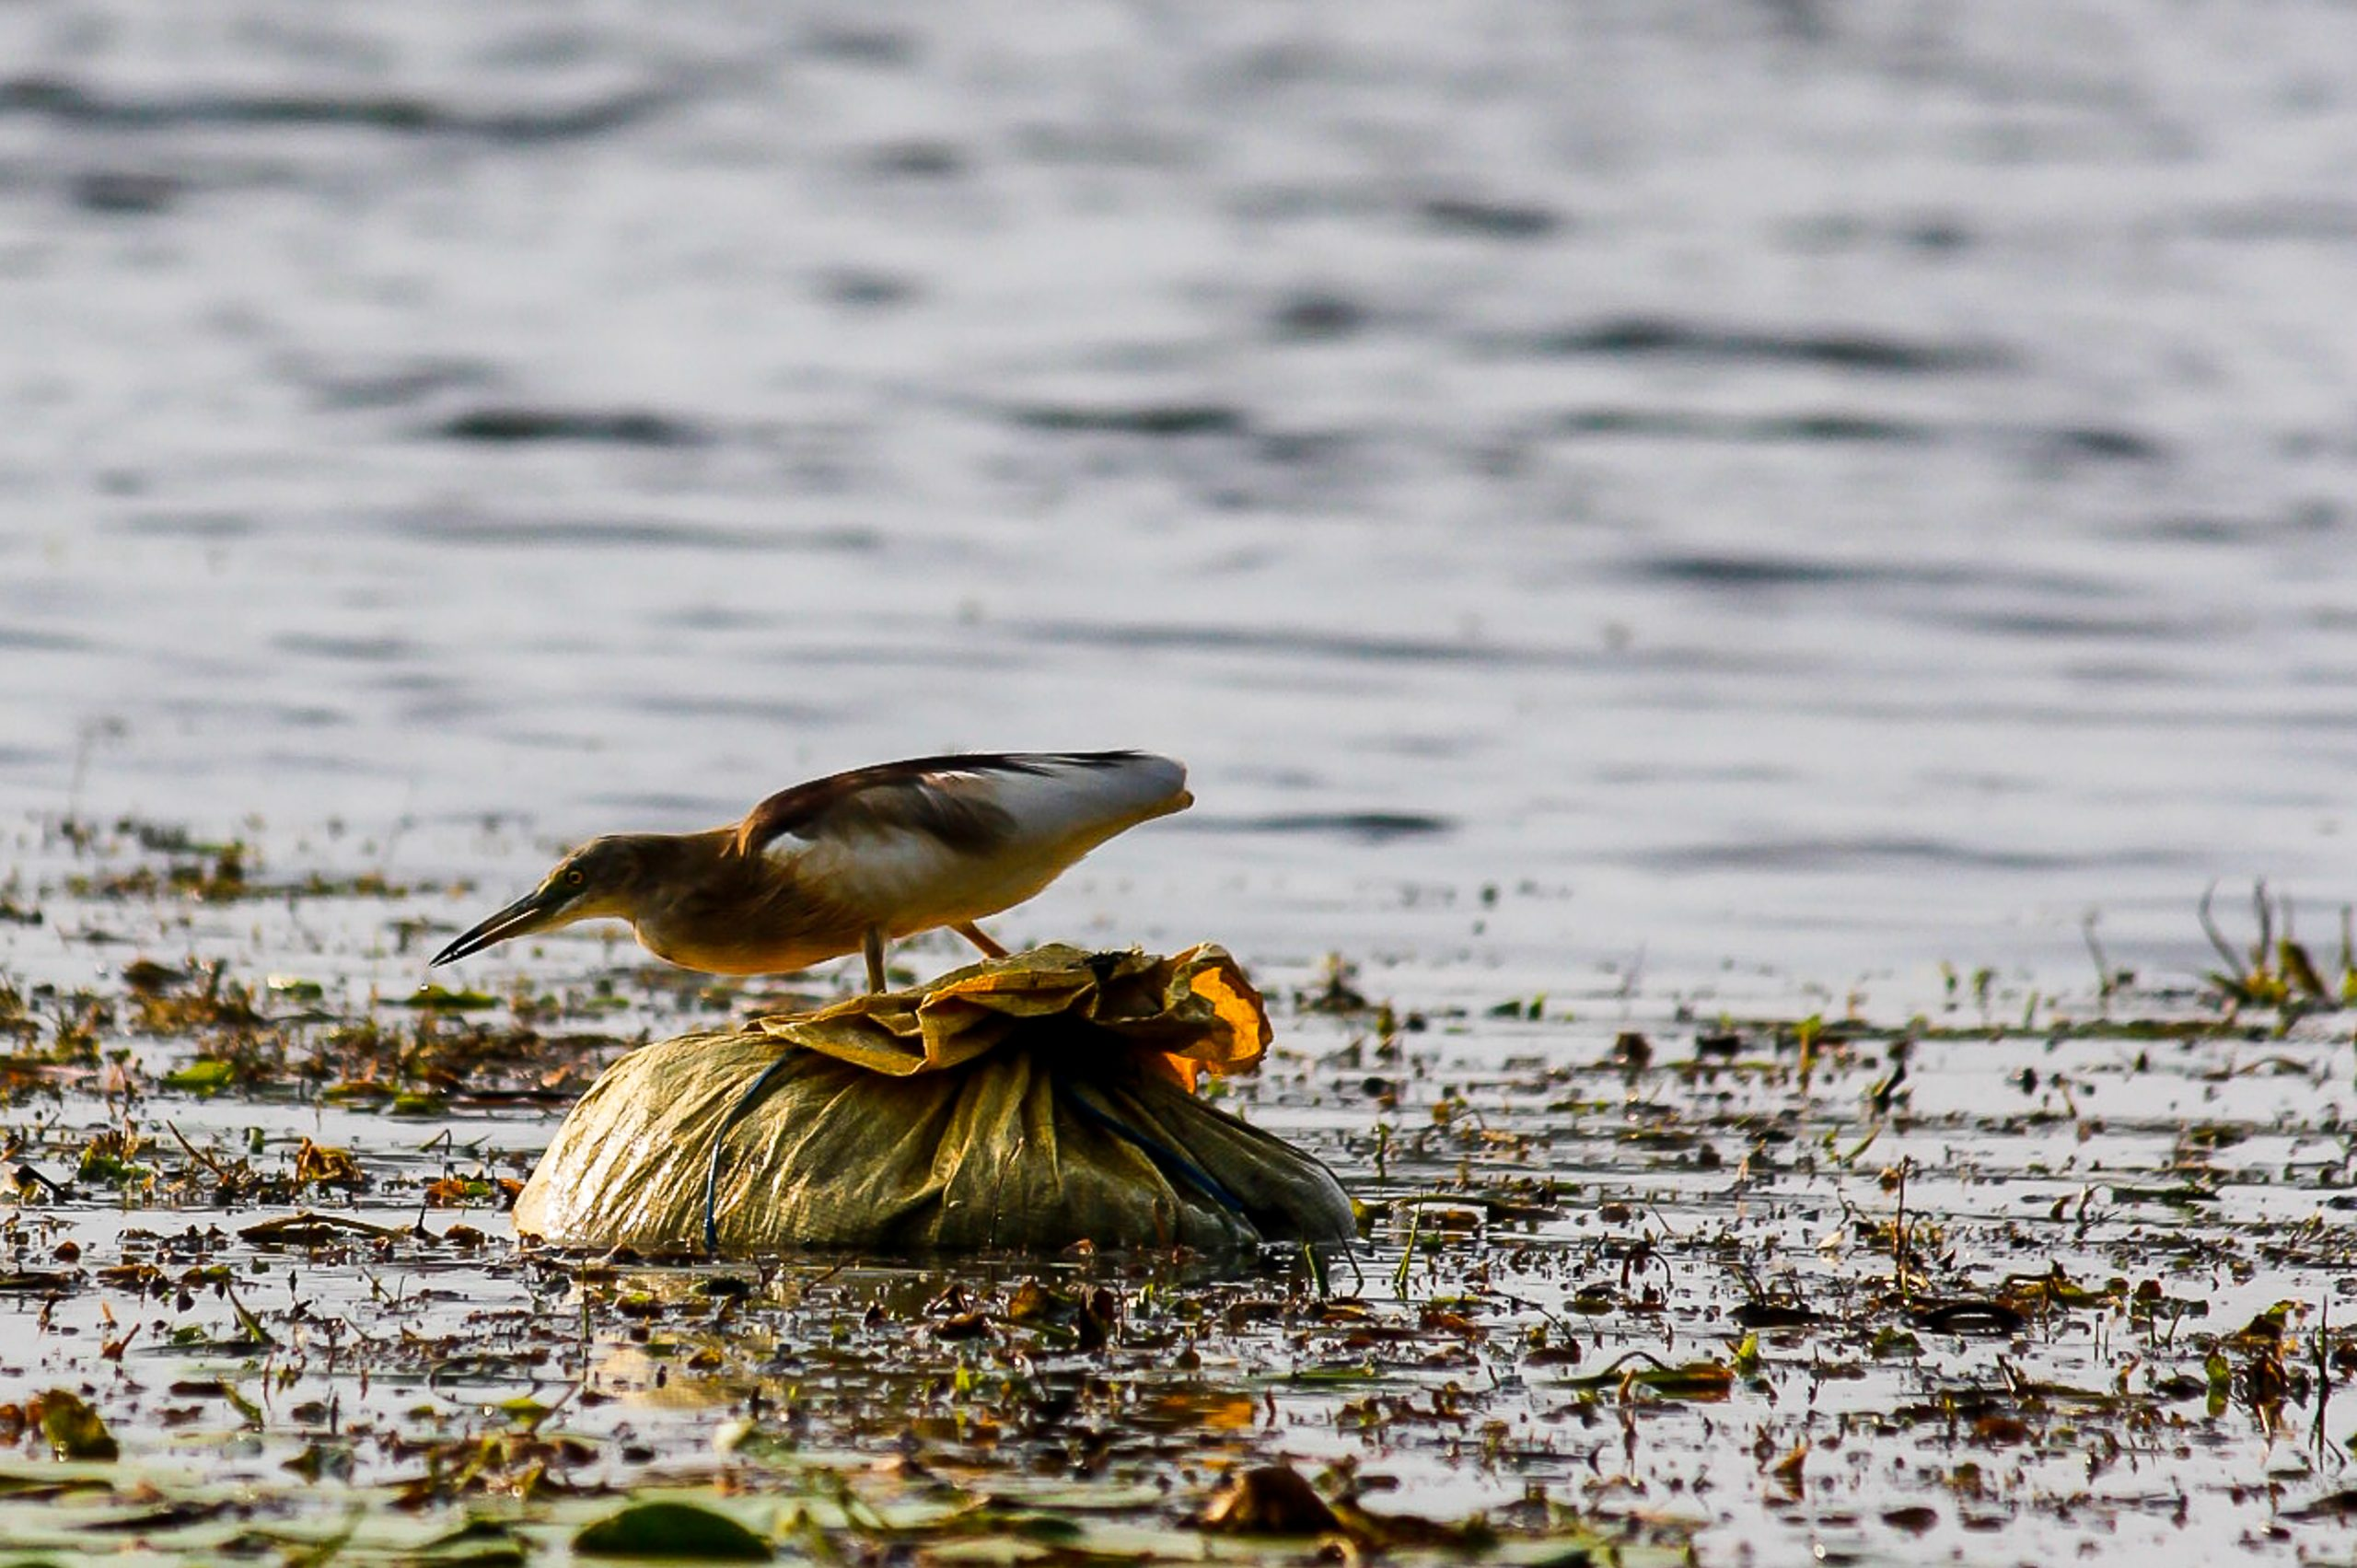 A bird in a polluted pond